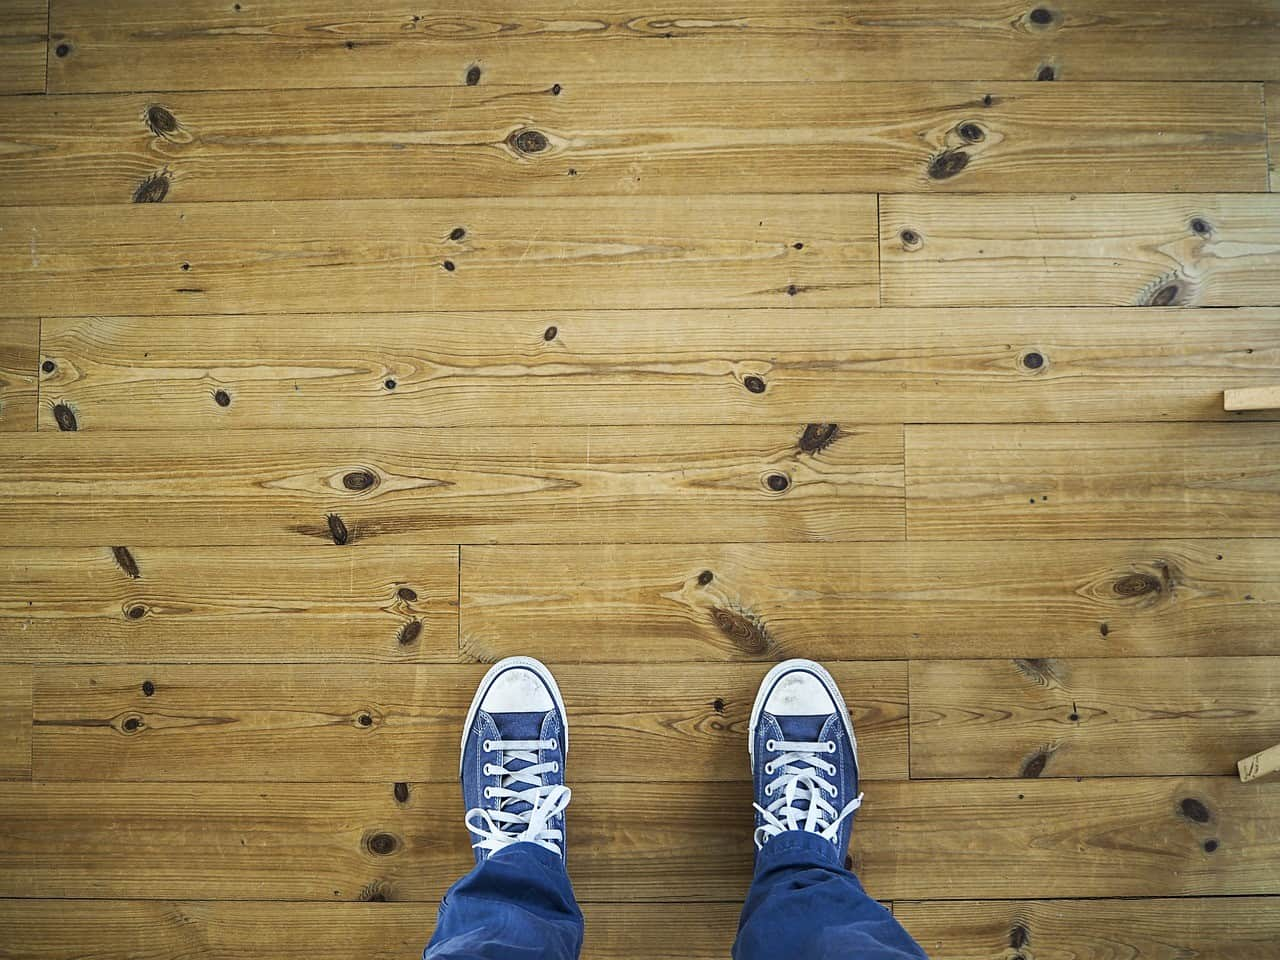 How To Clean Hardwood Floors After Removing Old Carpet